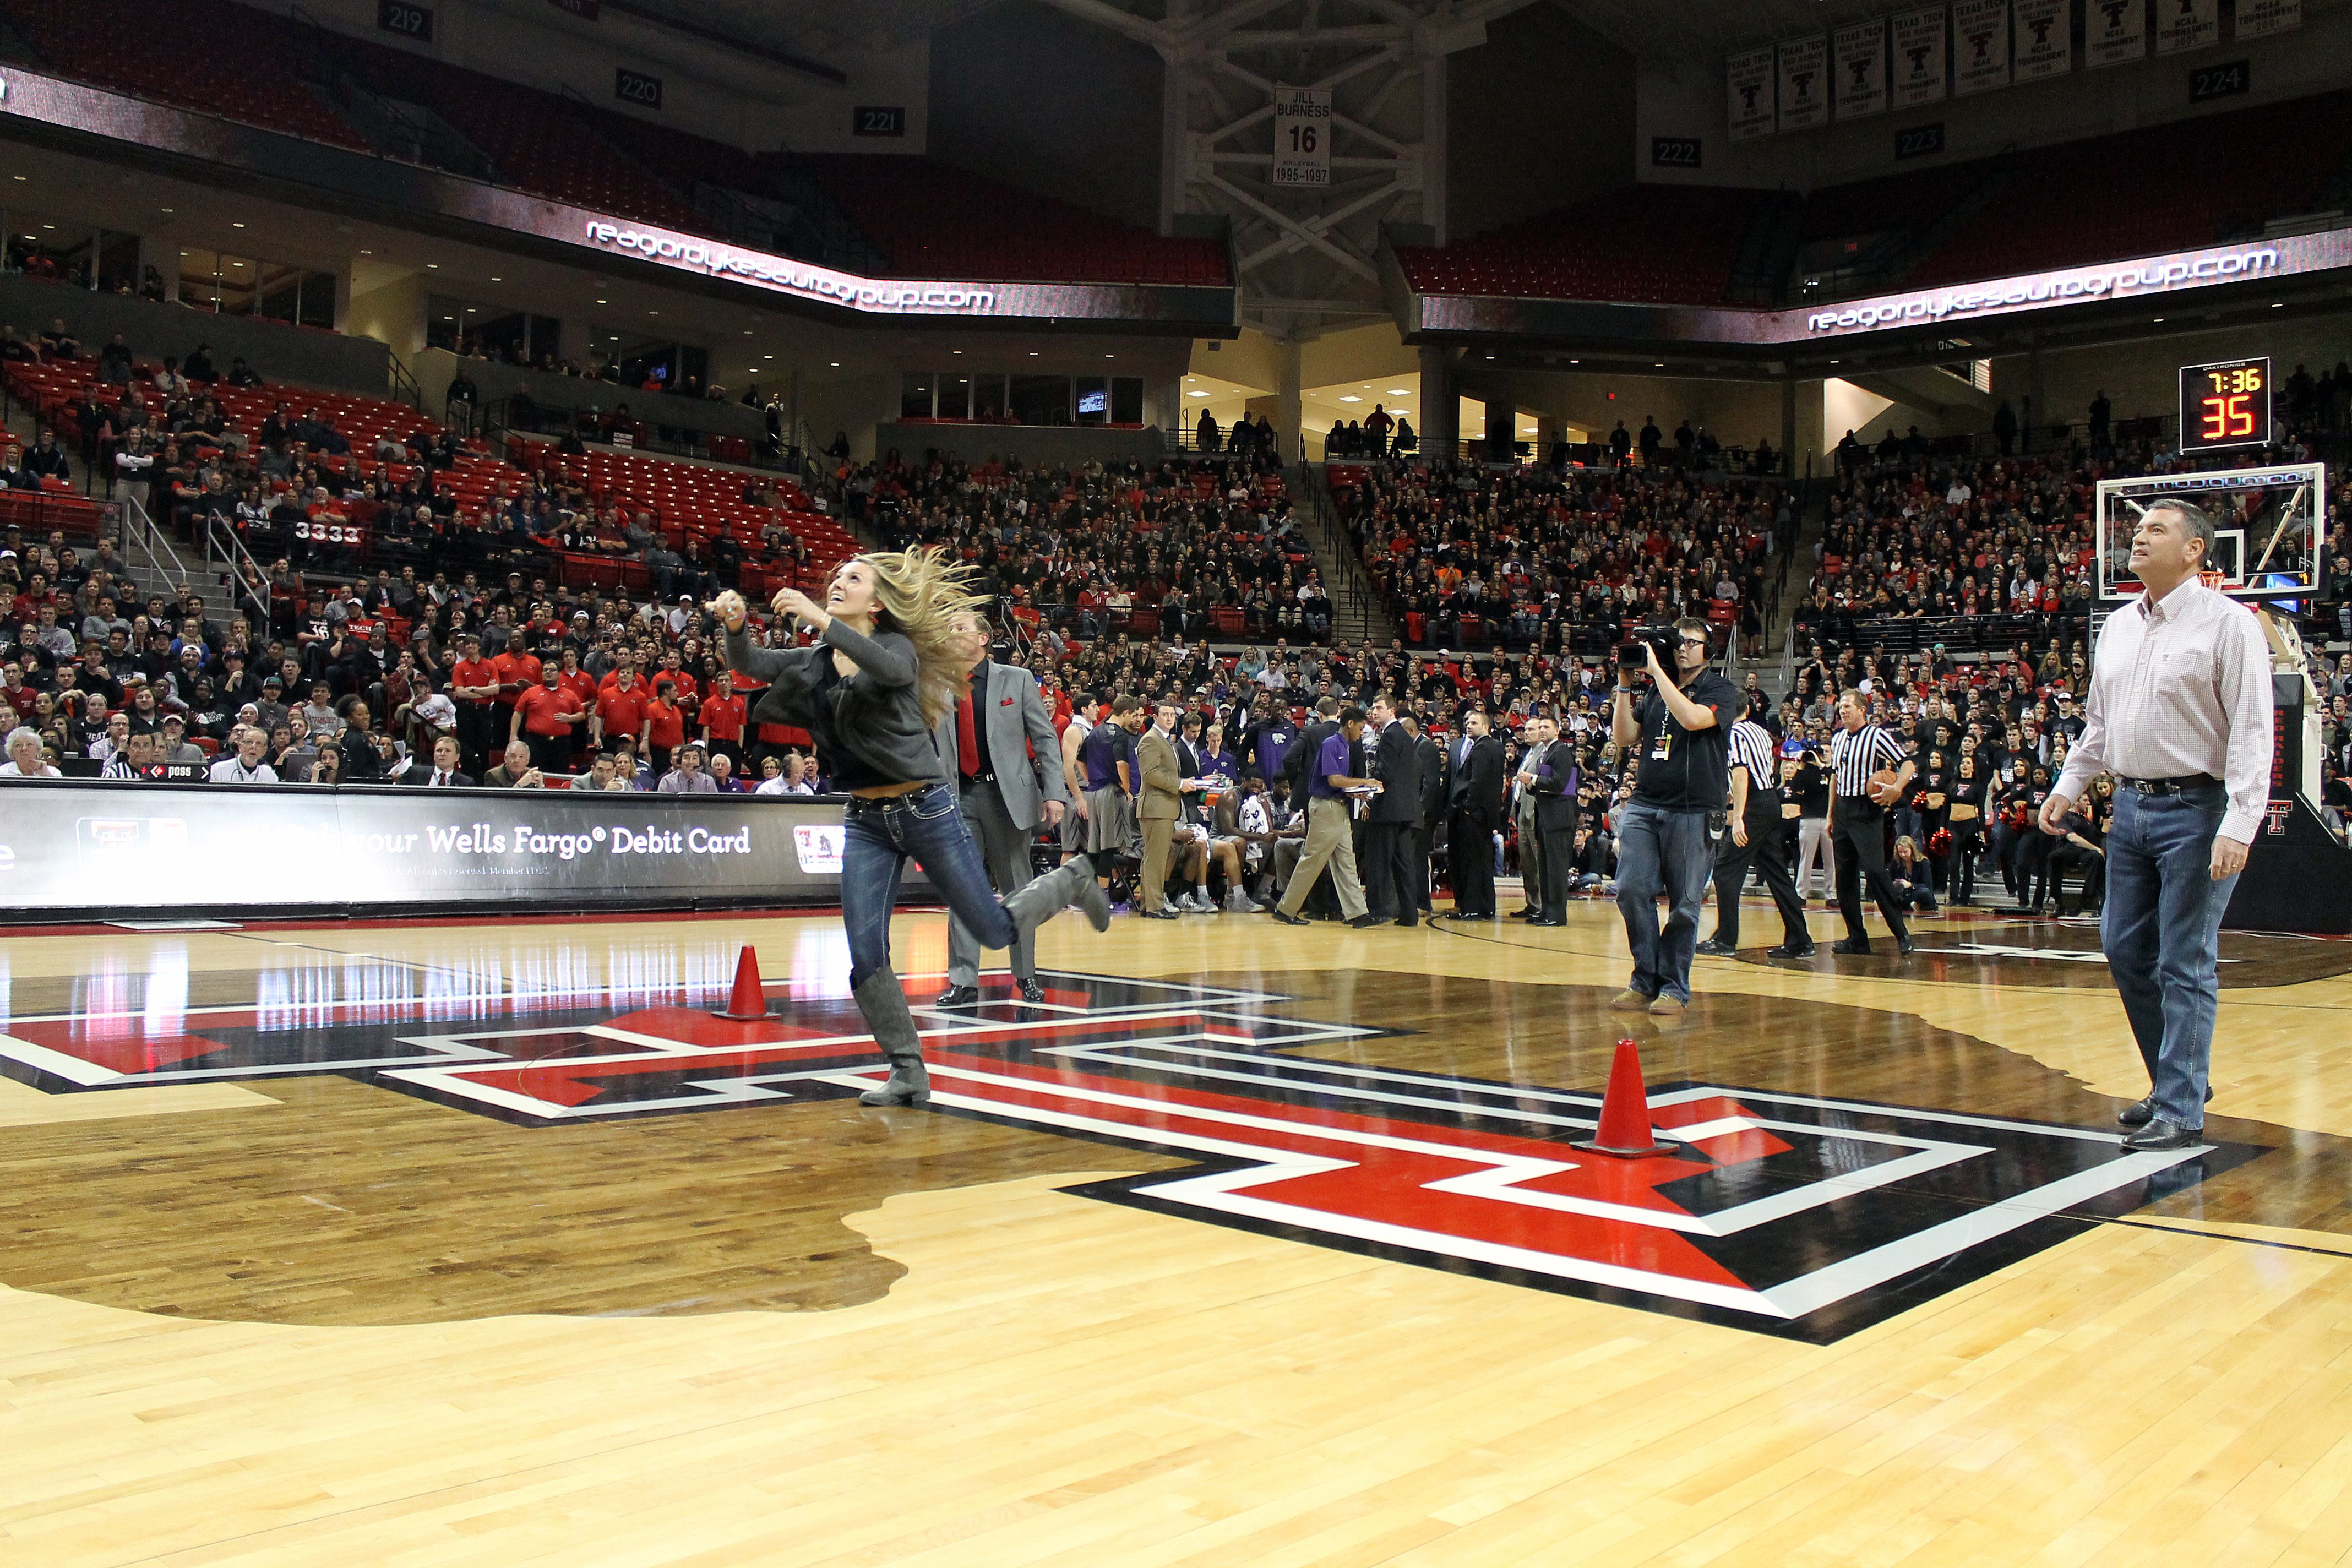 Four students got a chance to come onto the court